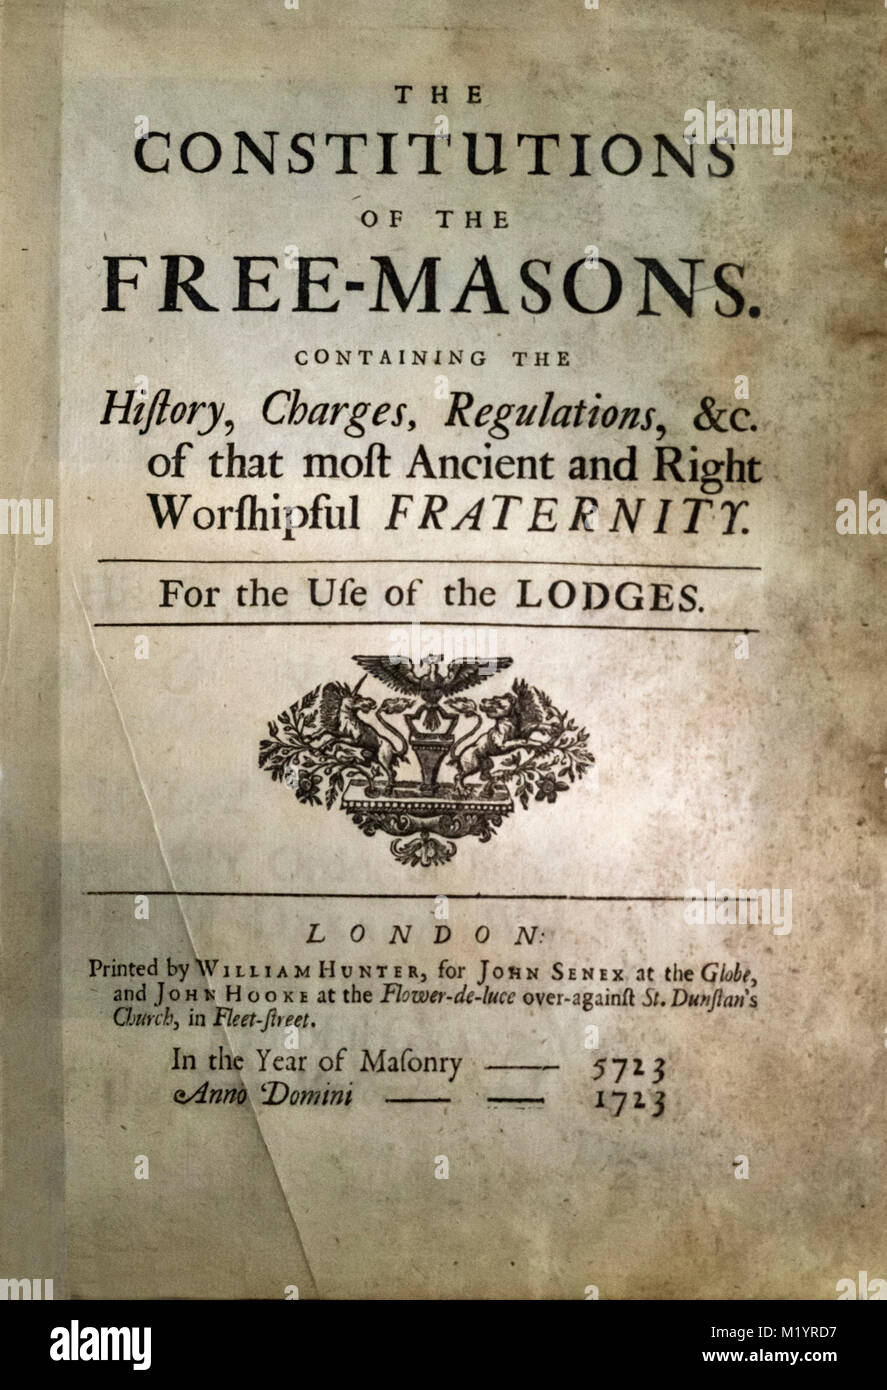 """The Constitutions of the Free-Masons"", frontispiece of a 1723 edition of  the constitution of the Freemasons."